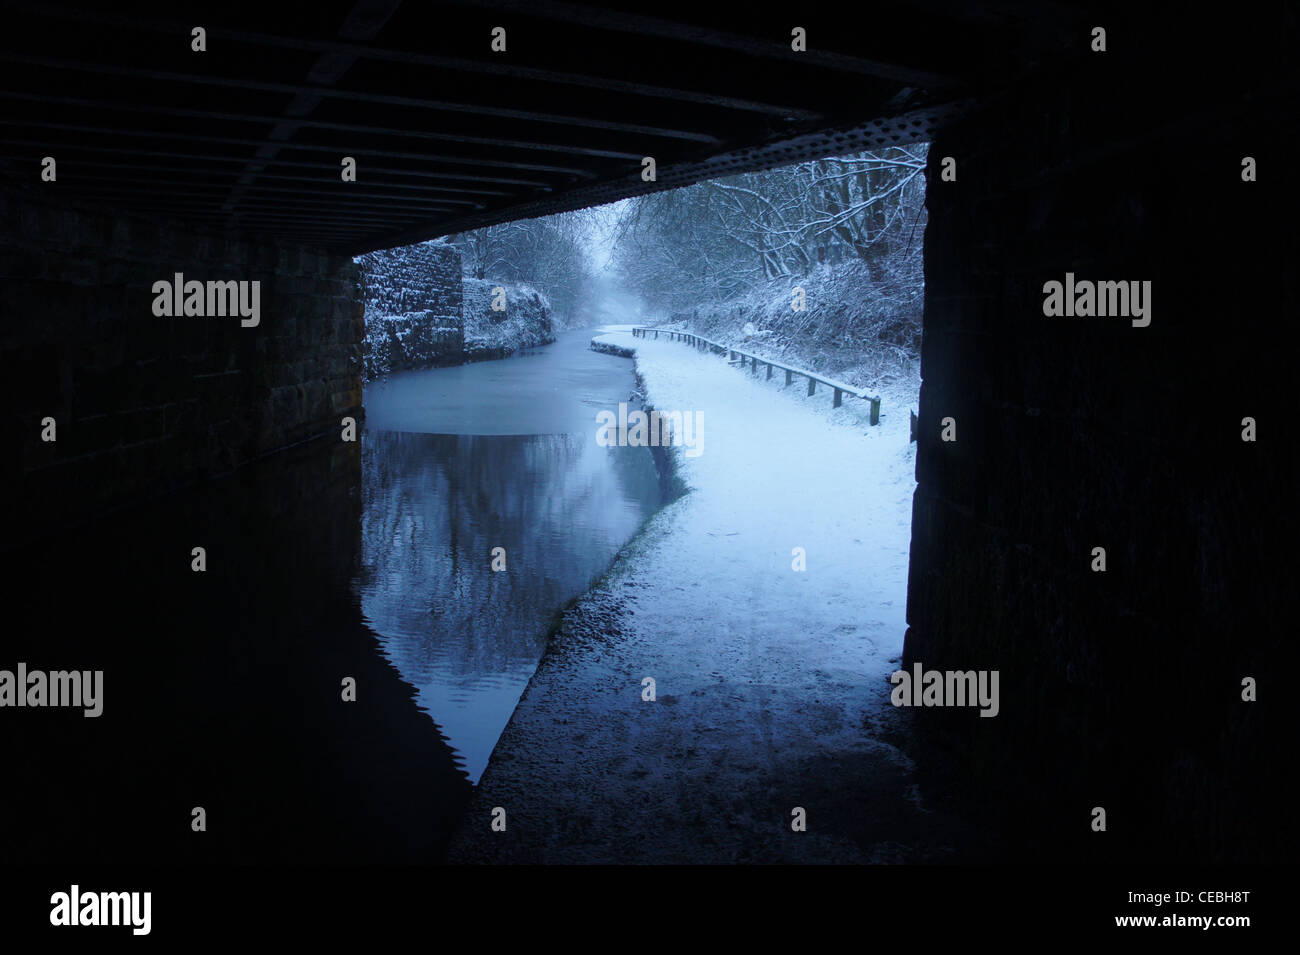 SONY DSC , Under the bridge looking at the snowy towpath. - Stock Image